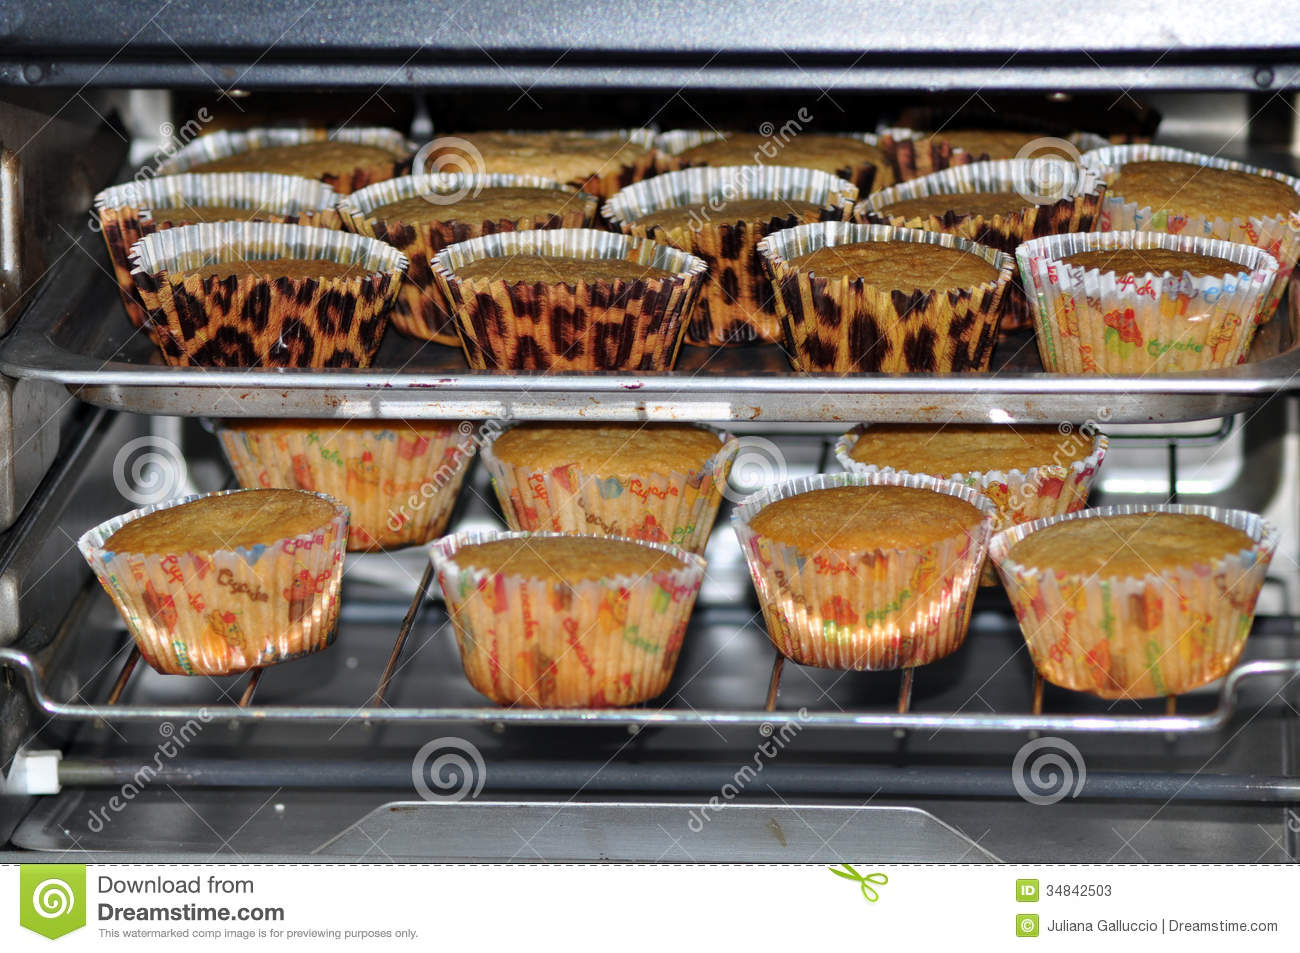 how to make cupcakes in oven